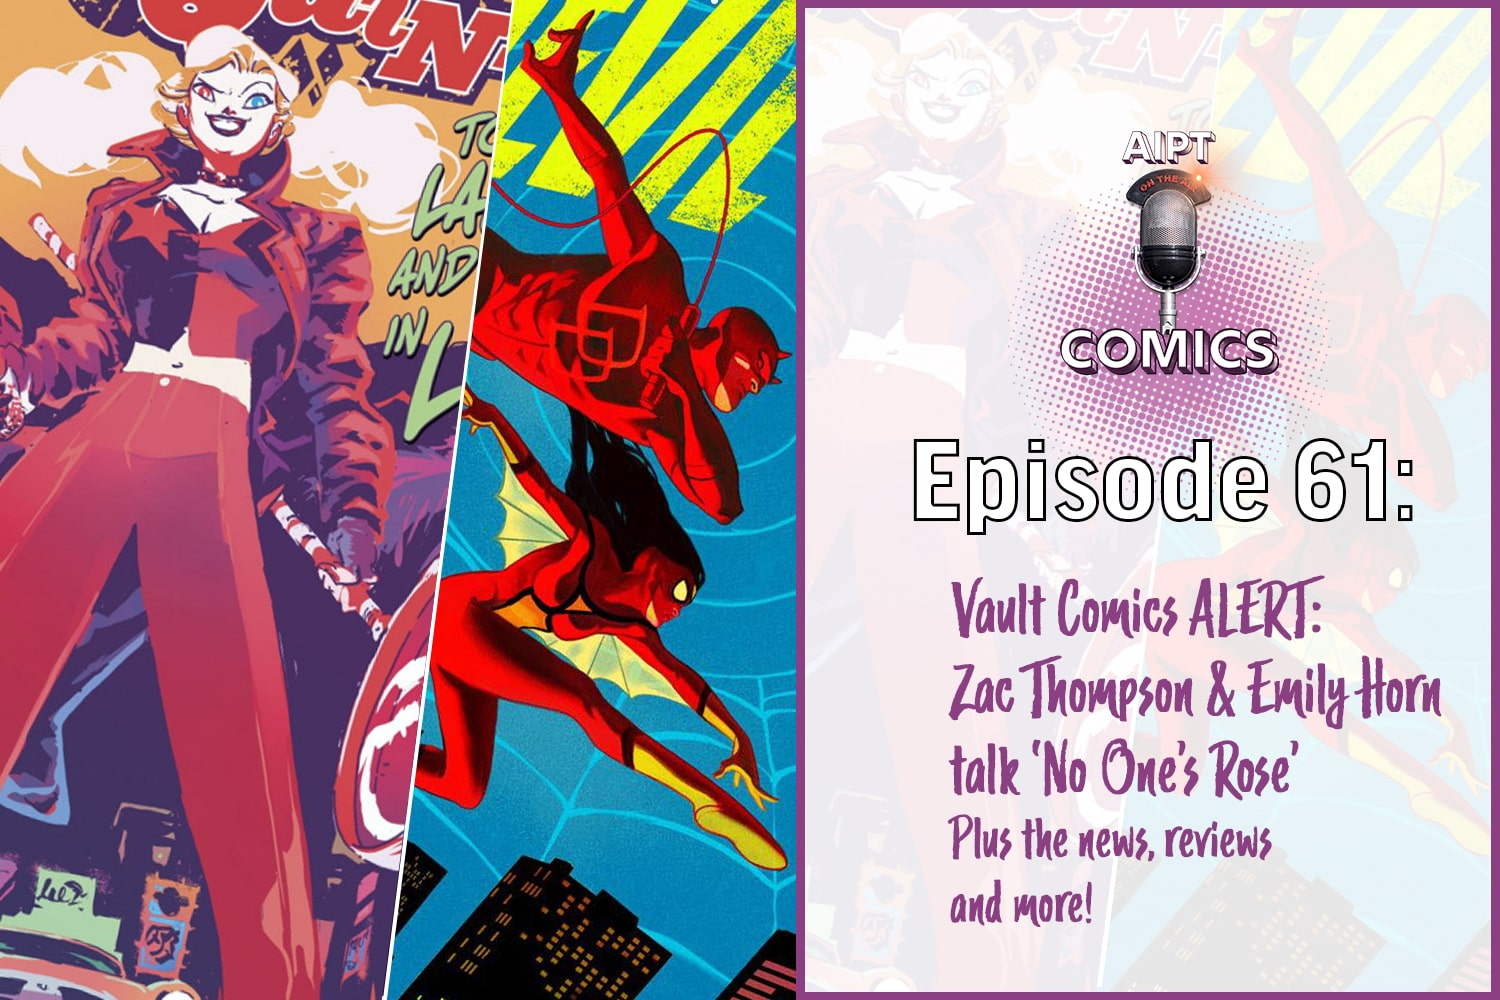 This week special guests Zac Thompson and Emily Horn join us to talk about their upcoming Vault Comics series No One's Rose out March 25th. We get into the nitty-gritty, discuss science fiction, and more!